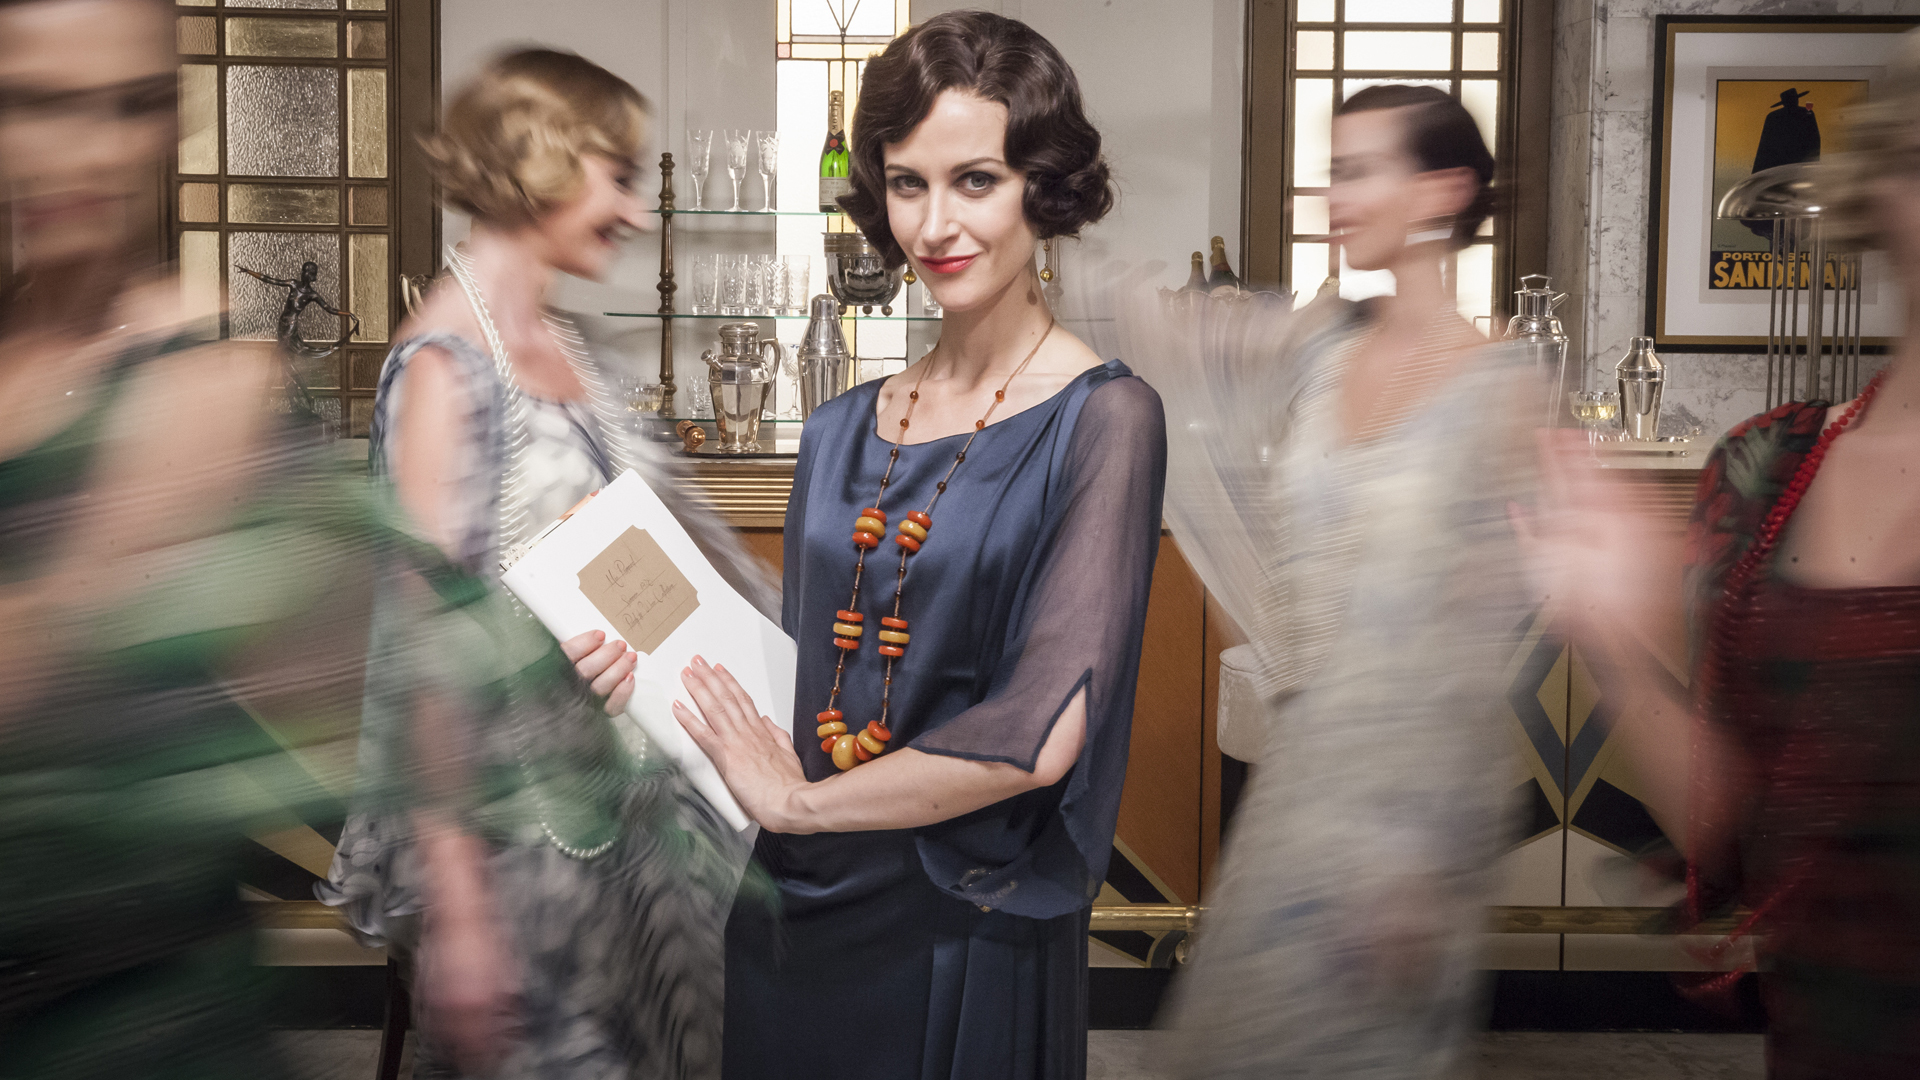 Times have changed for department stores such as Selfridges – seen here in                            the ITV drama, Mr Selfridge – and they face an uncertain future as they face stern retail competition